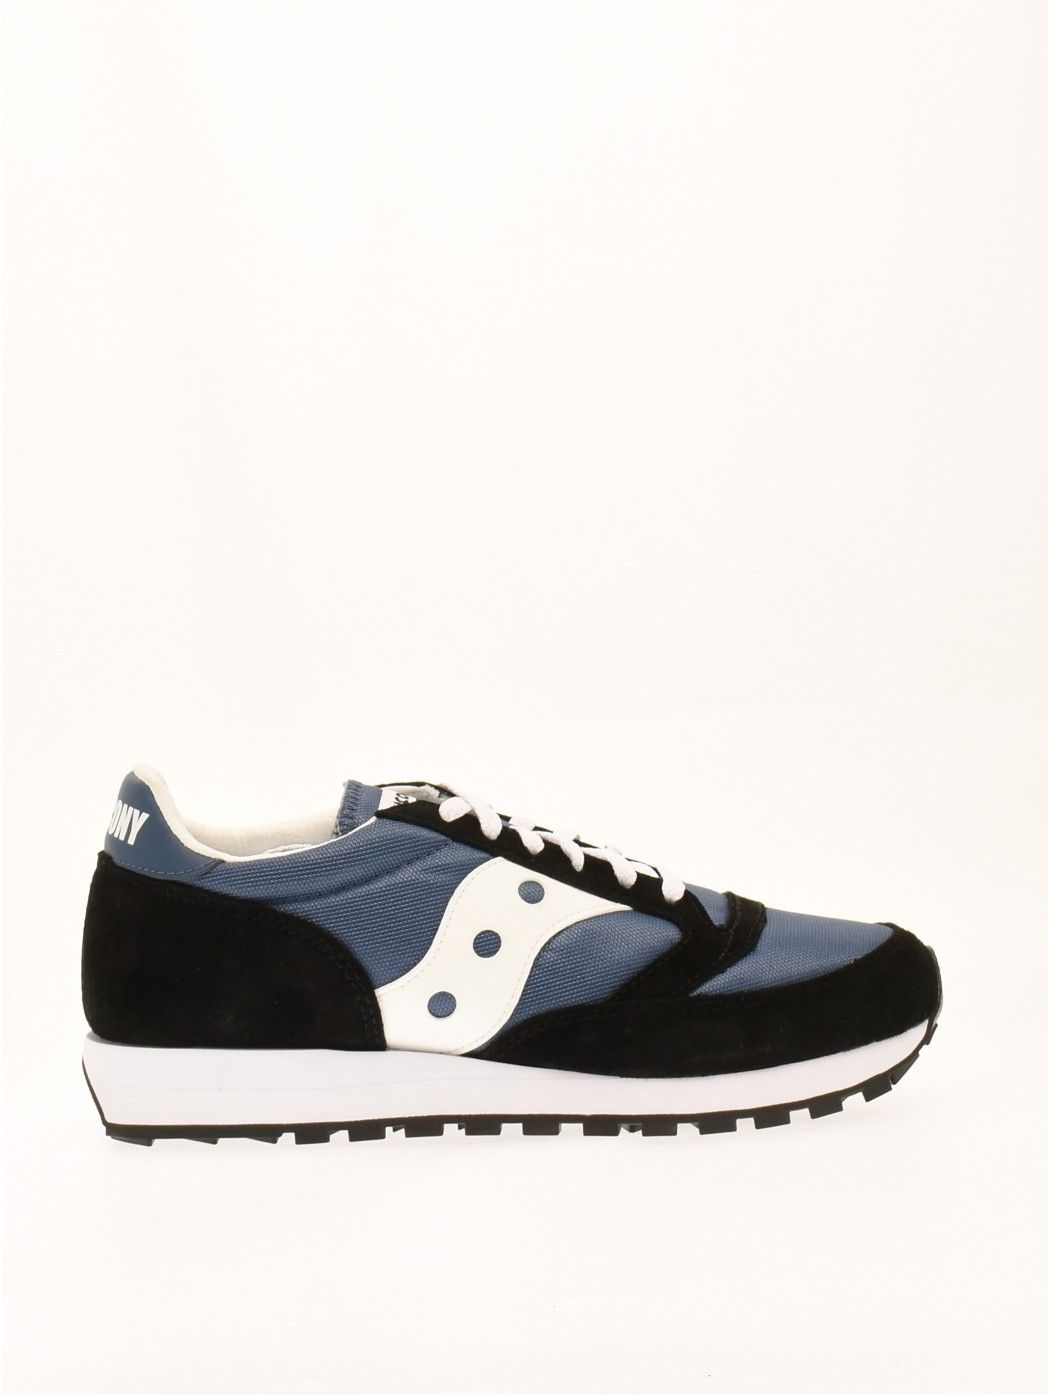 JAZZ 81 BLACK/WHITE/NAVY SAUCONY S70539 10